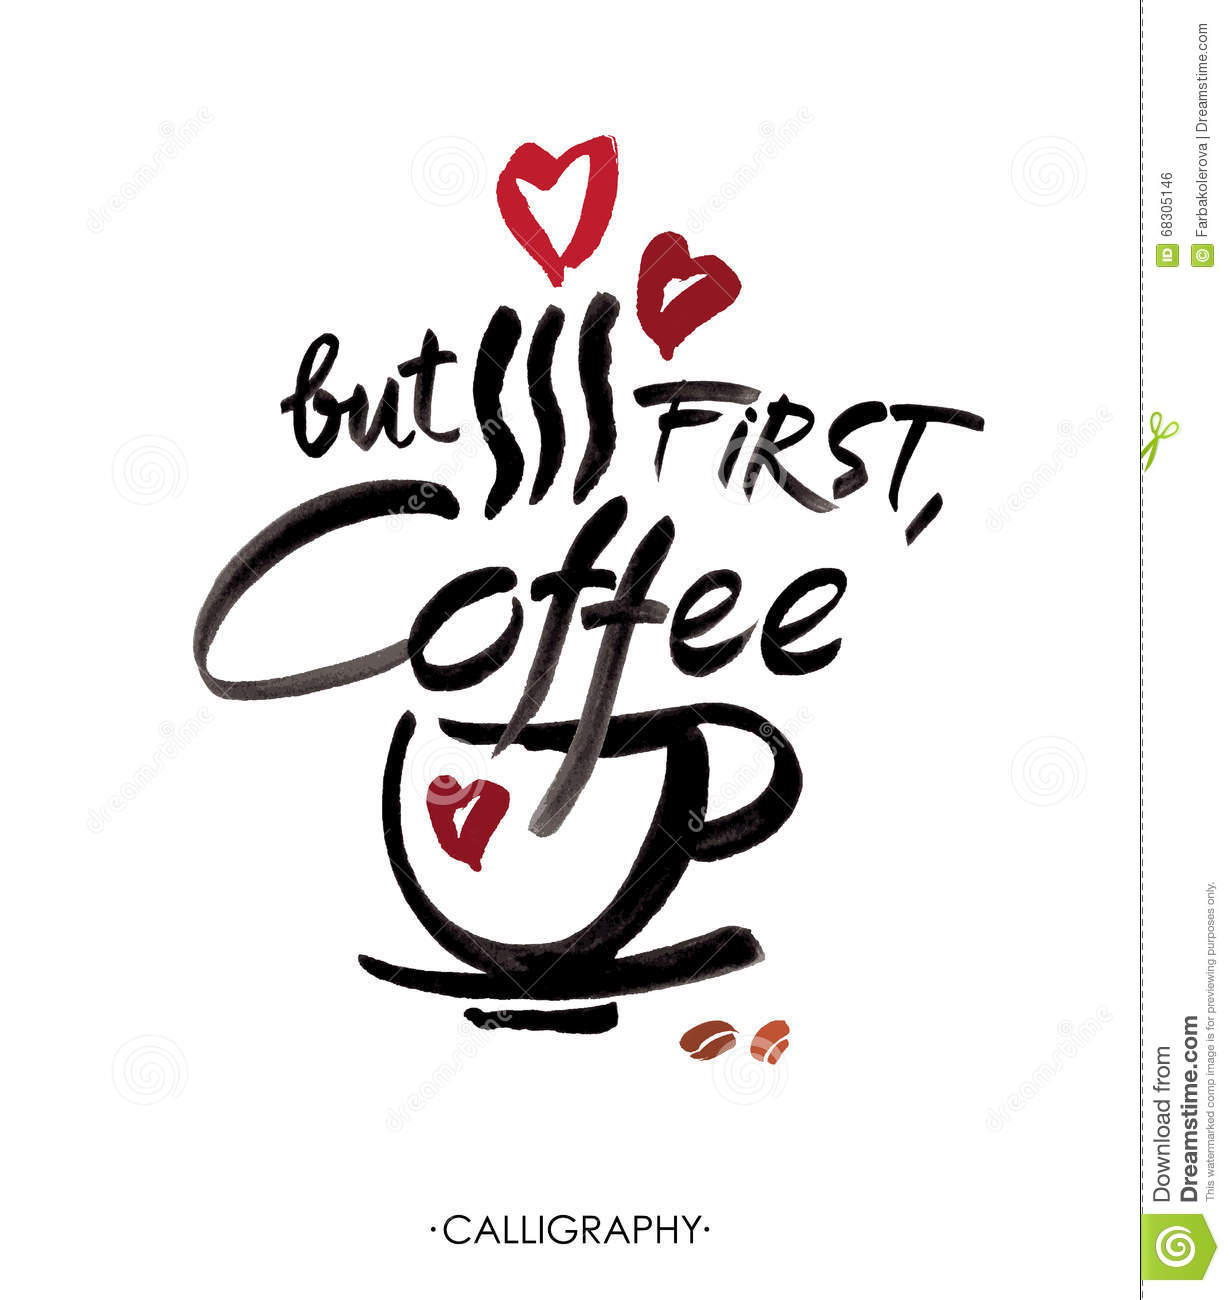 But first coffee ink hand lettering modern calligraphy